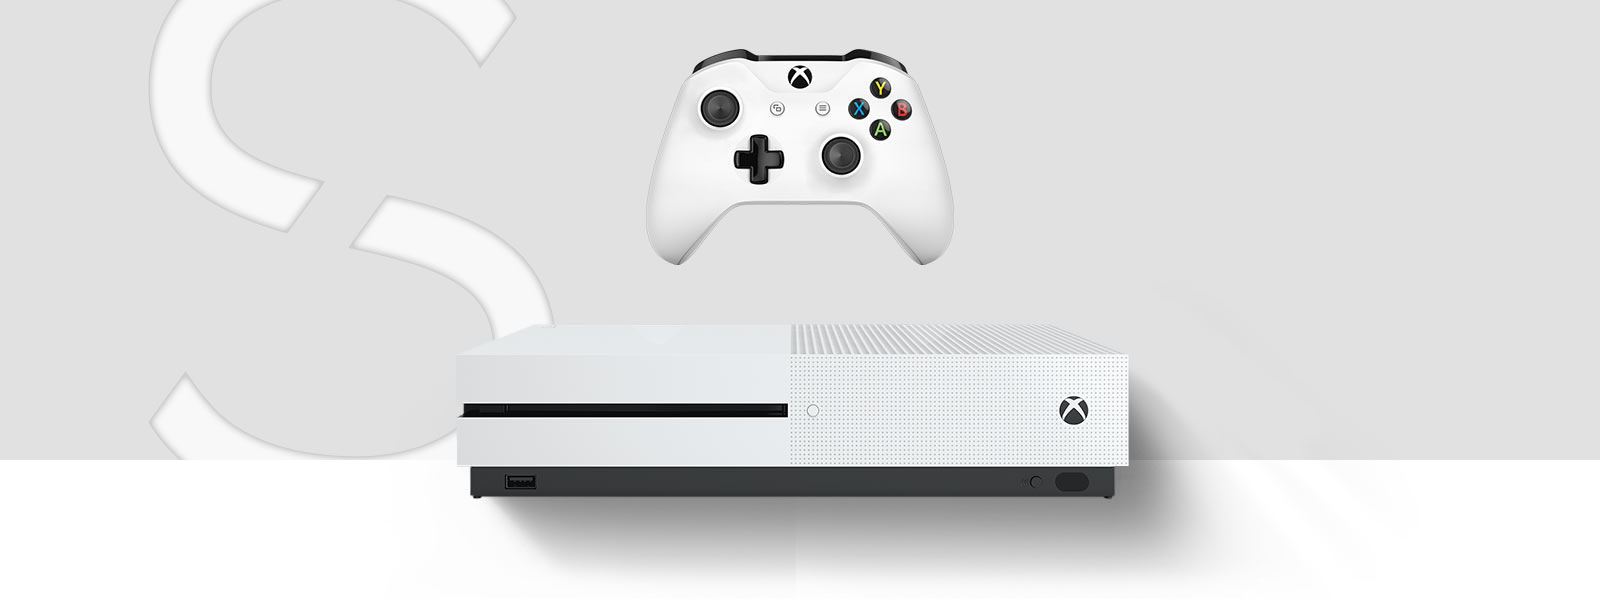 Front view of the Xbox One S console in front of a large stylised letter S